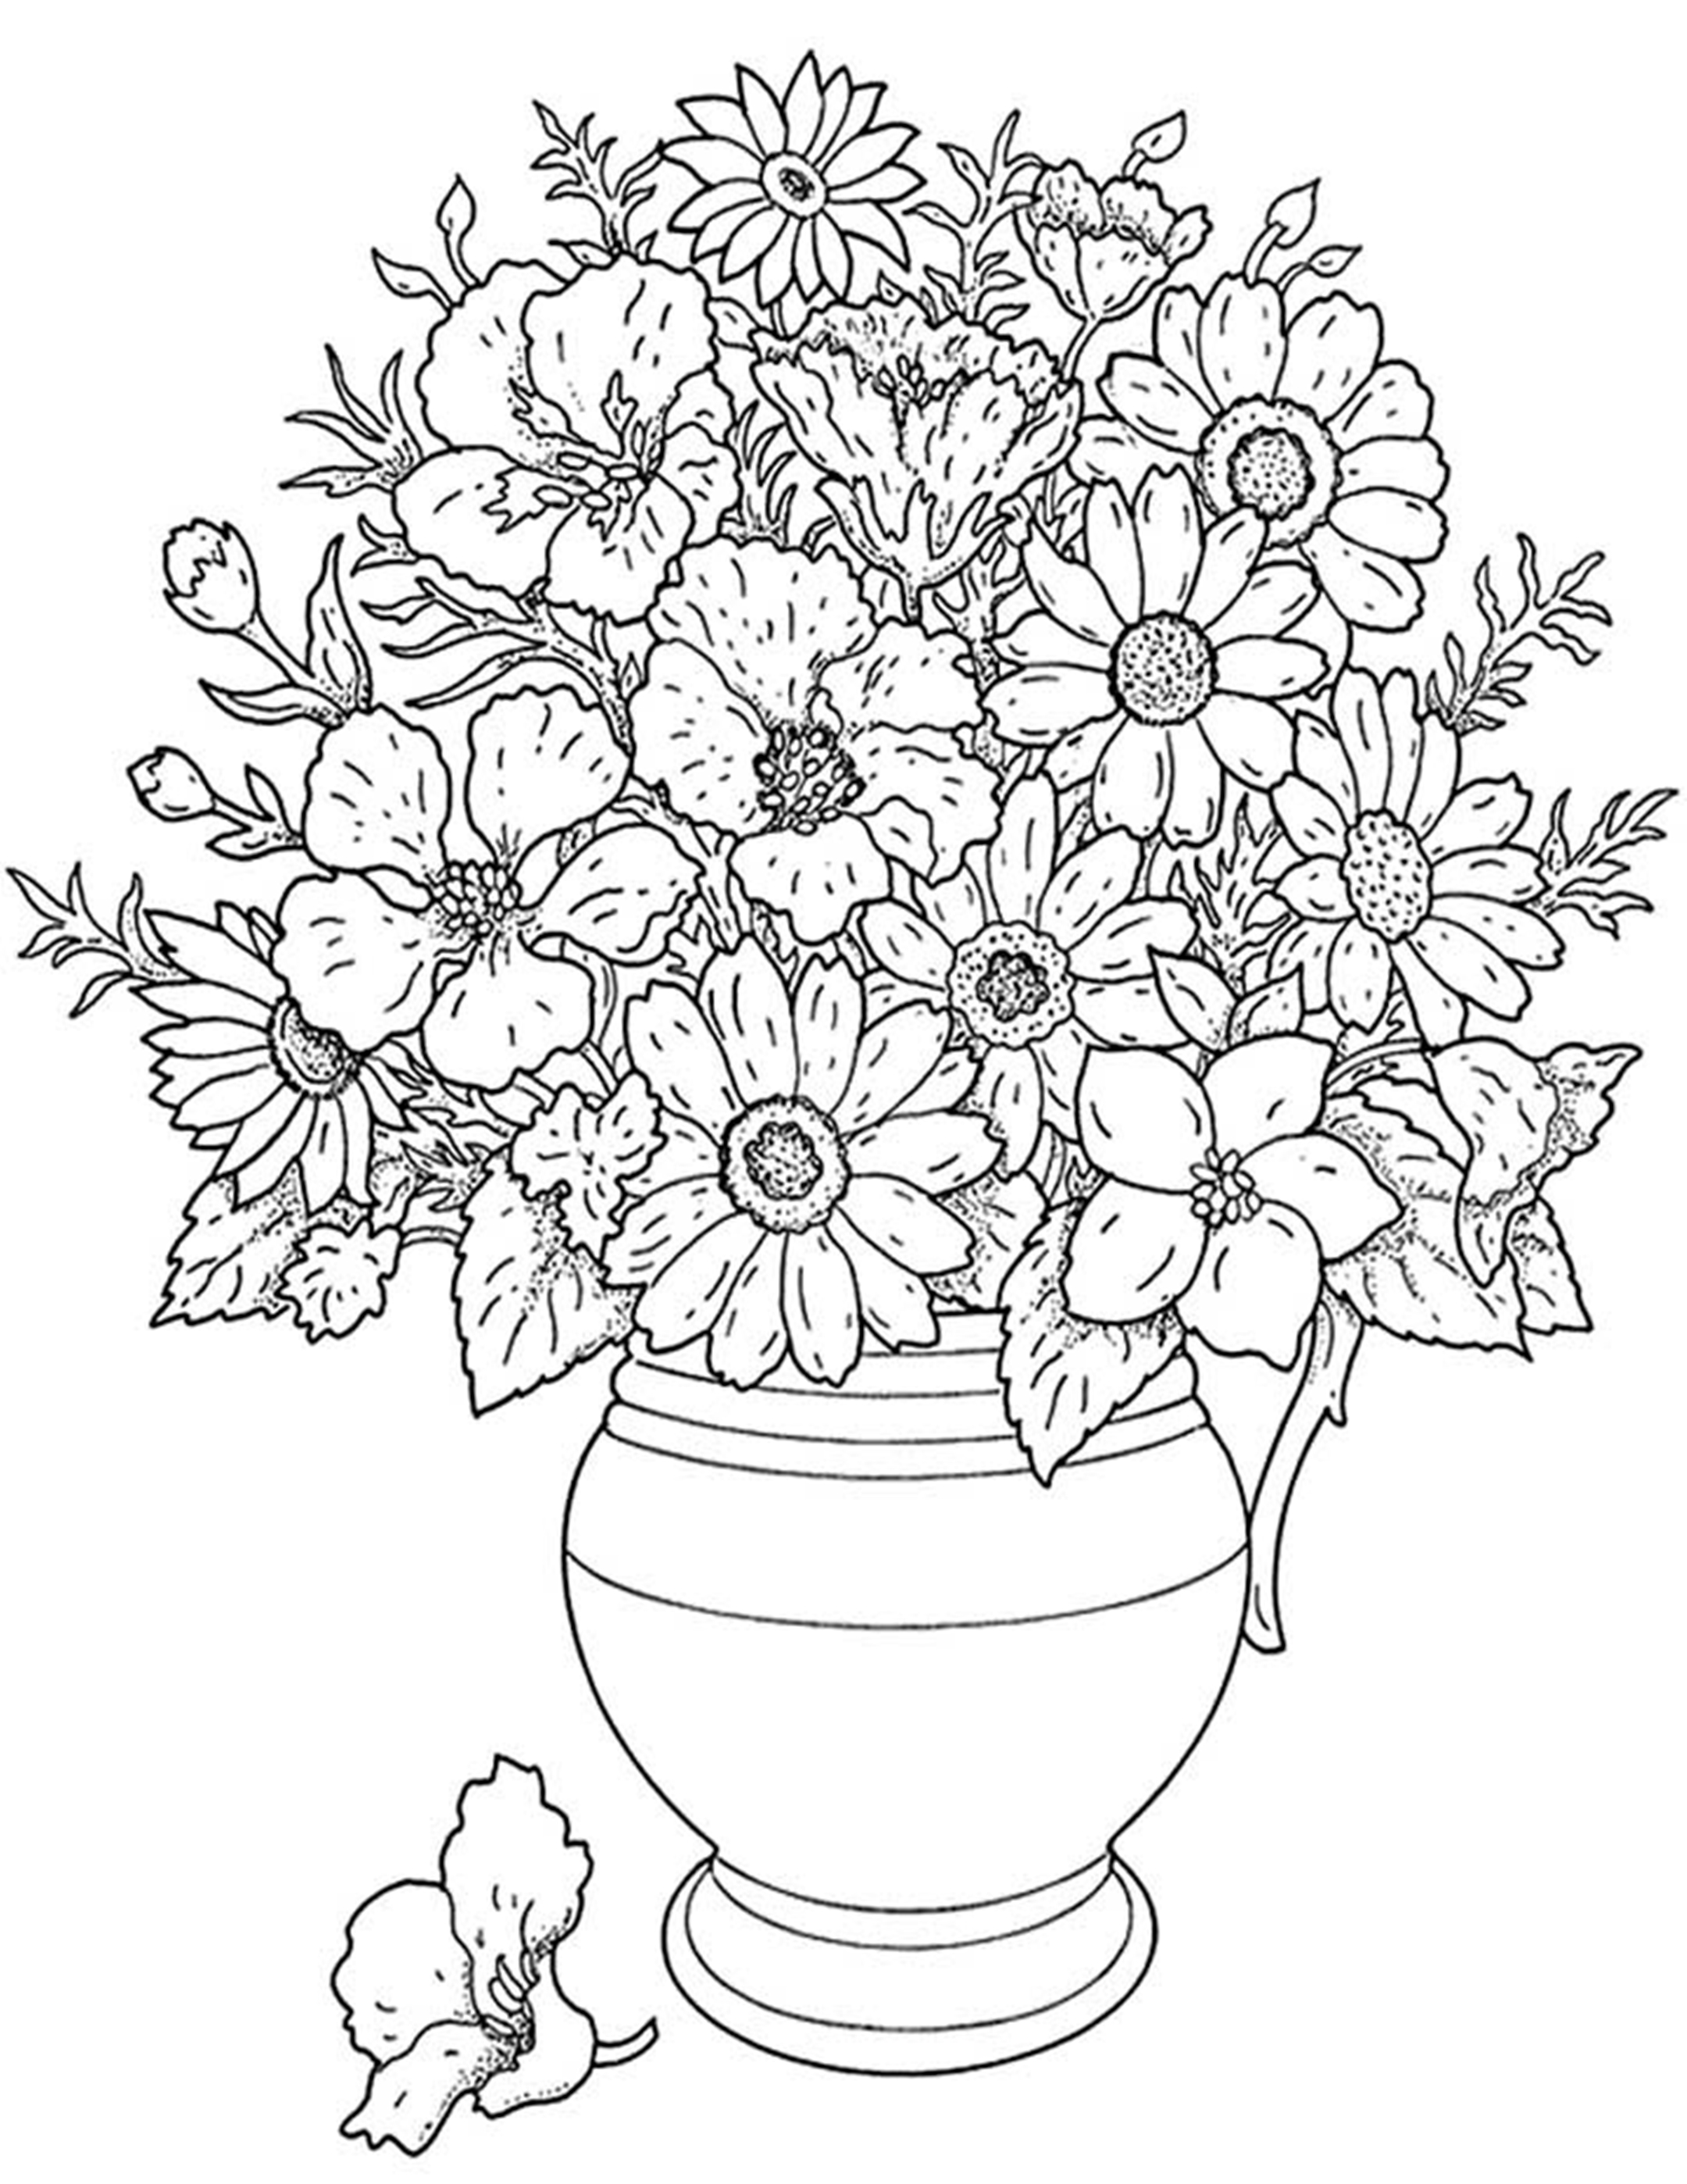 colouring pictures of flowers free printable flower coloring pages for kids cool2bkids of pictures flowers colouring